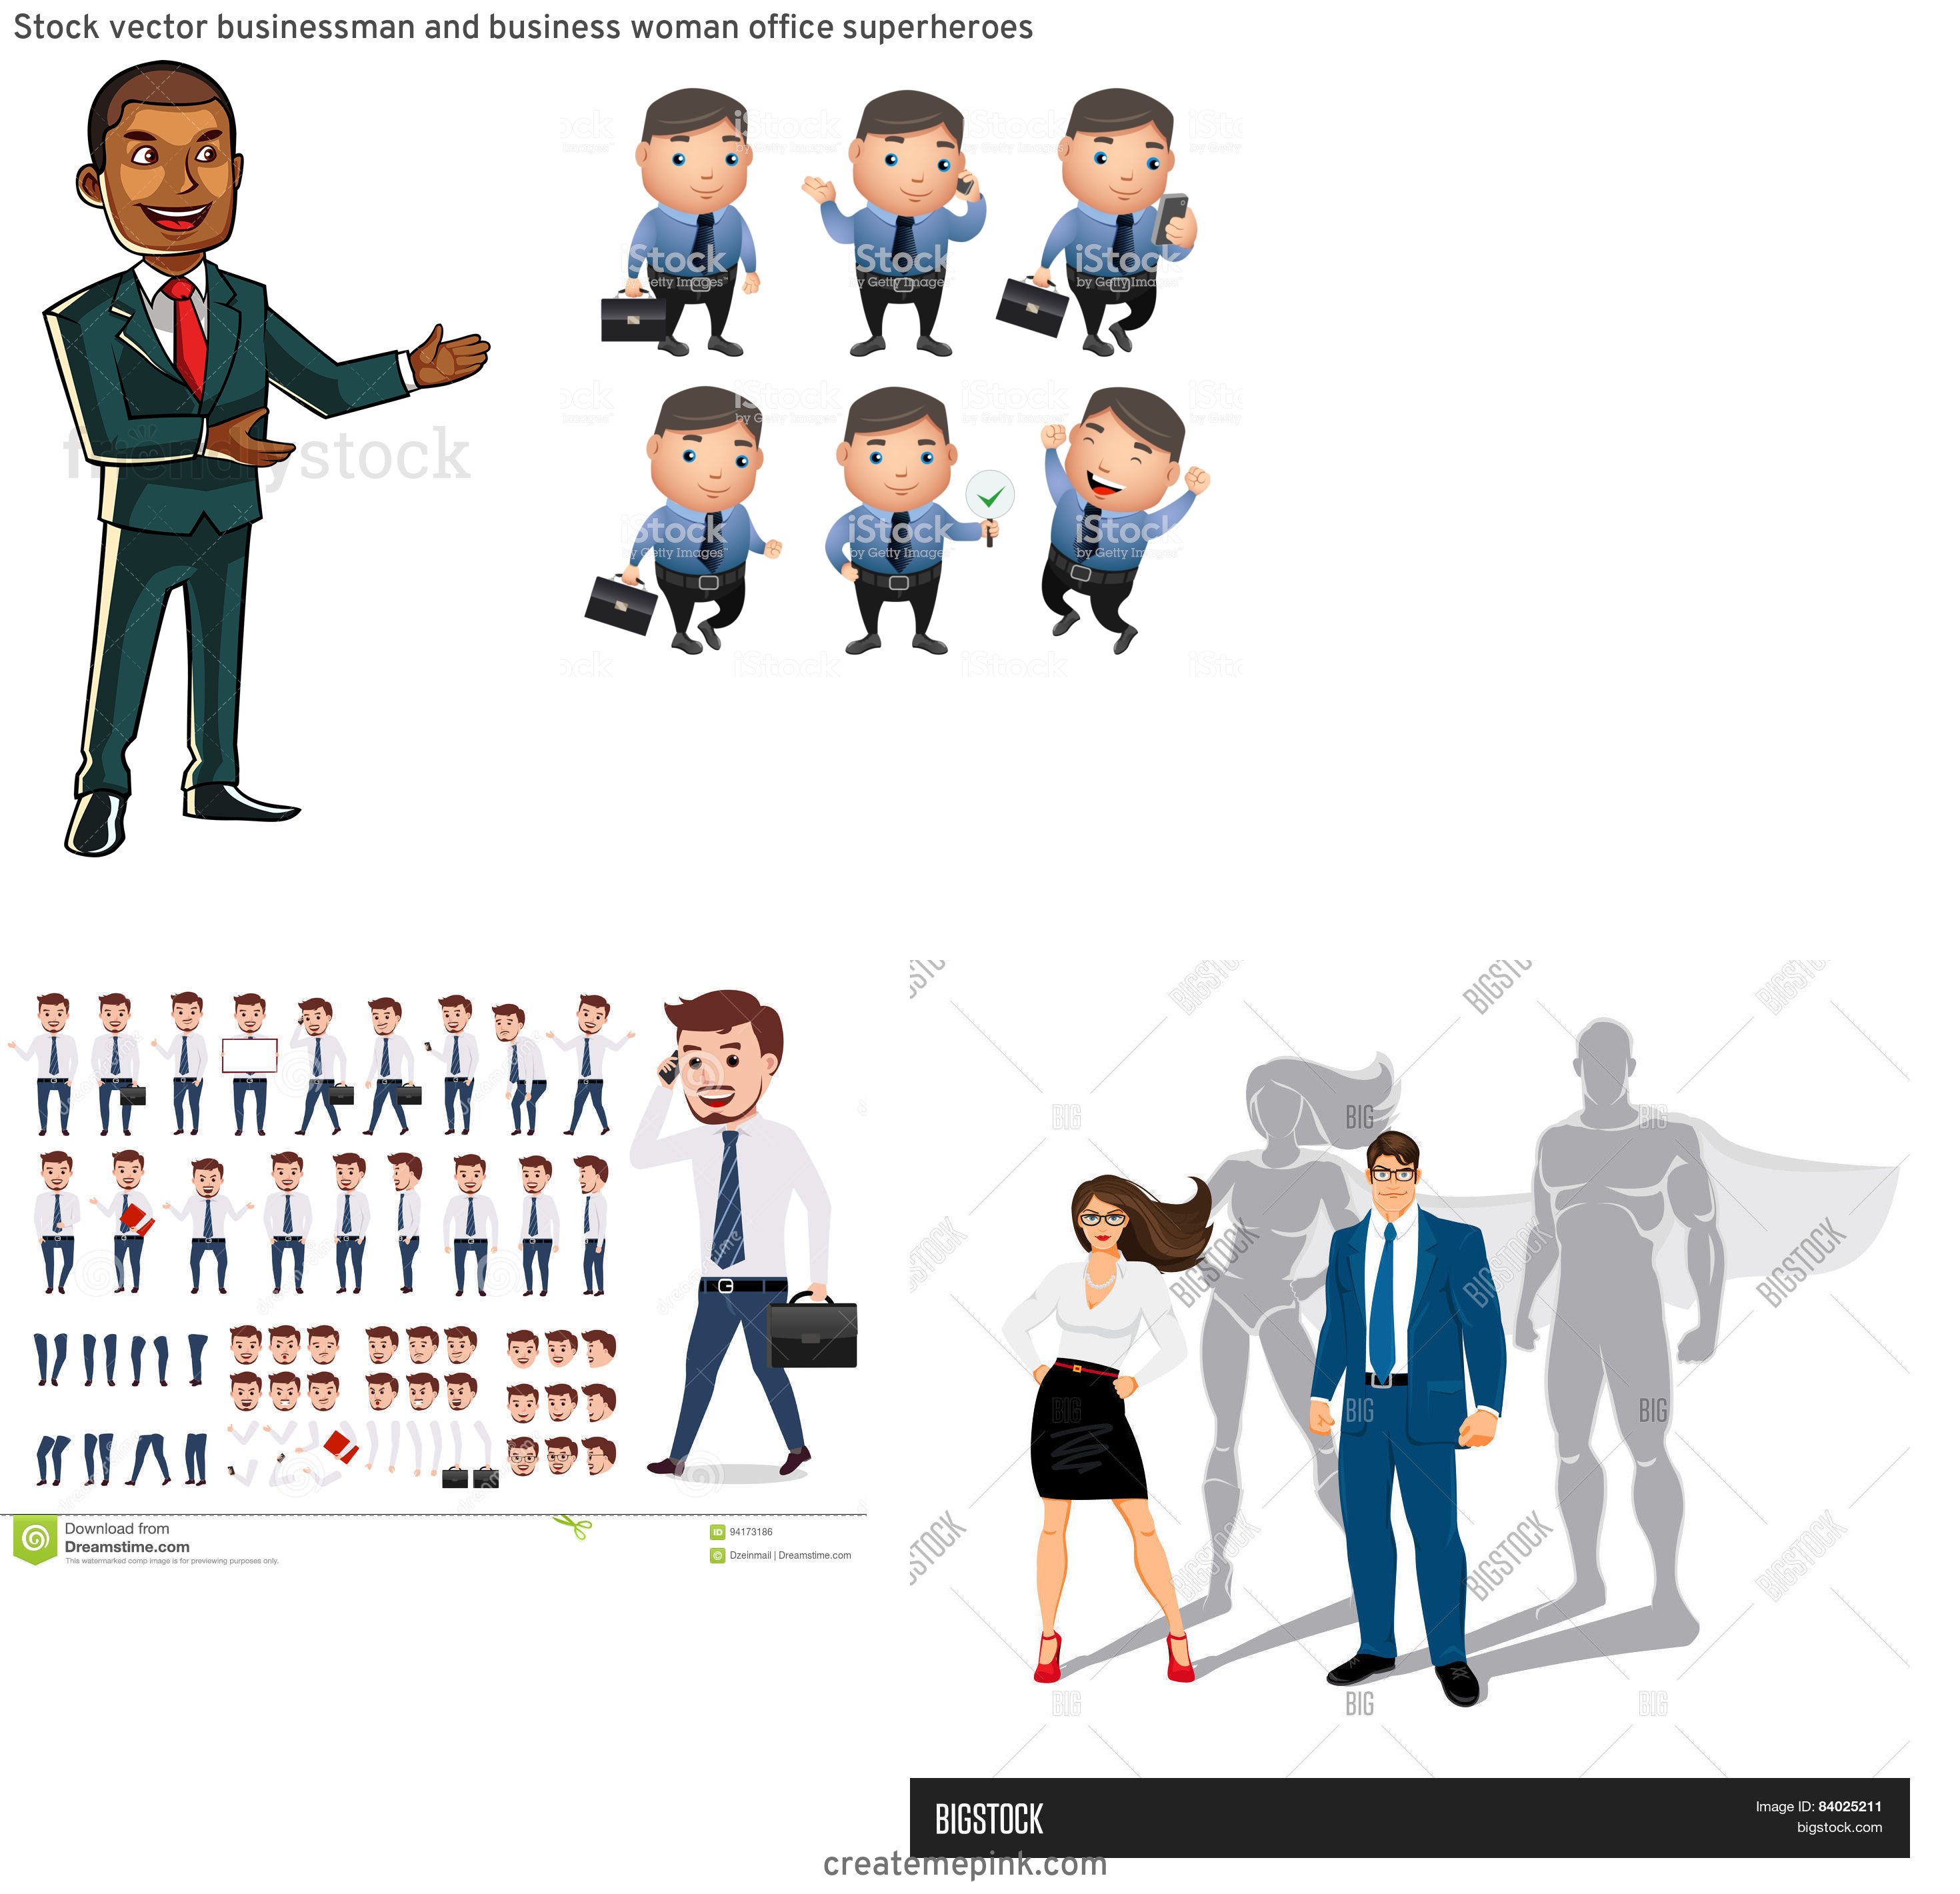 Vector Business Attire: Stock Vector Businessman And Business Woman Office Superheroes